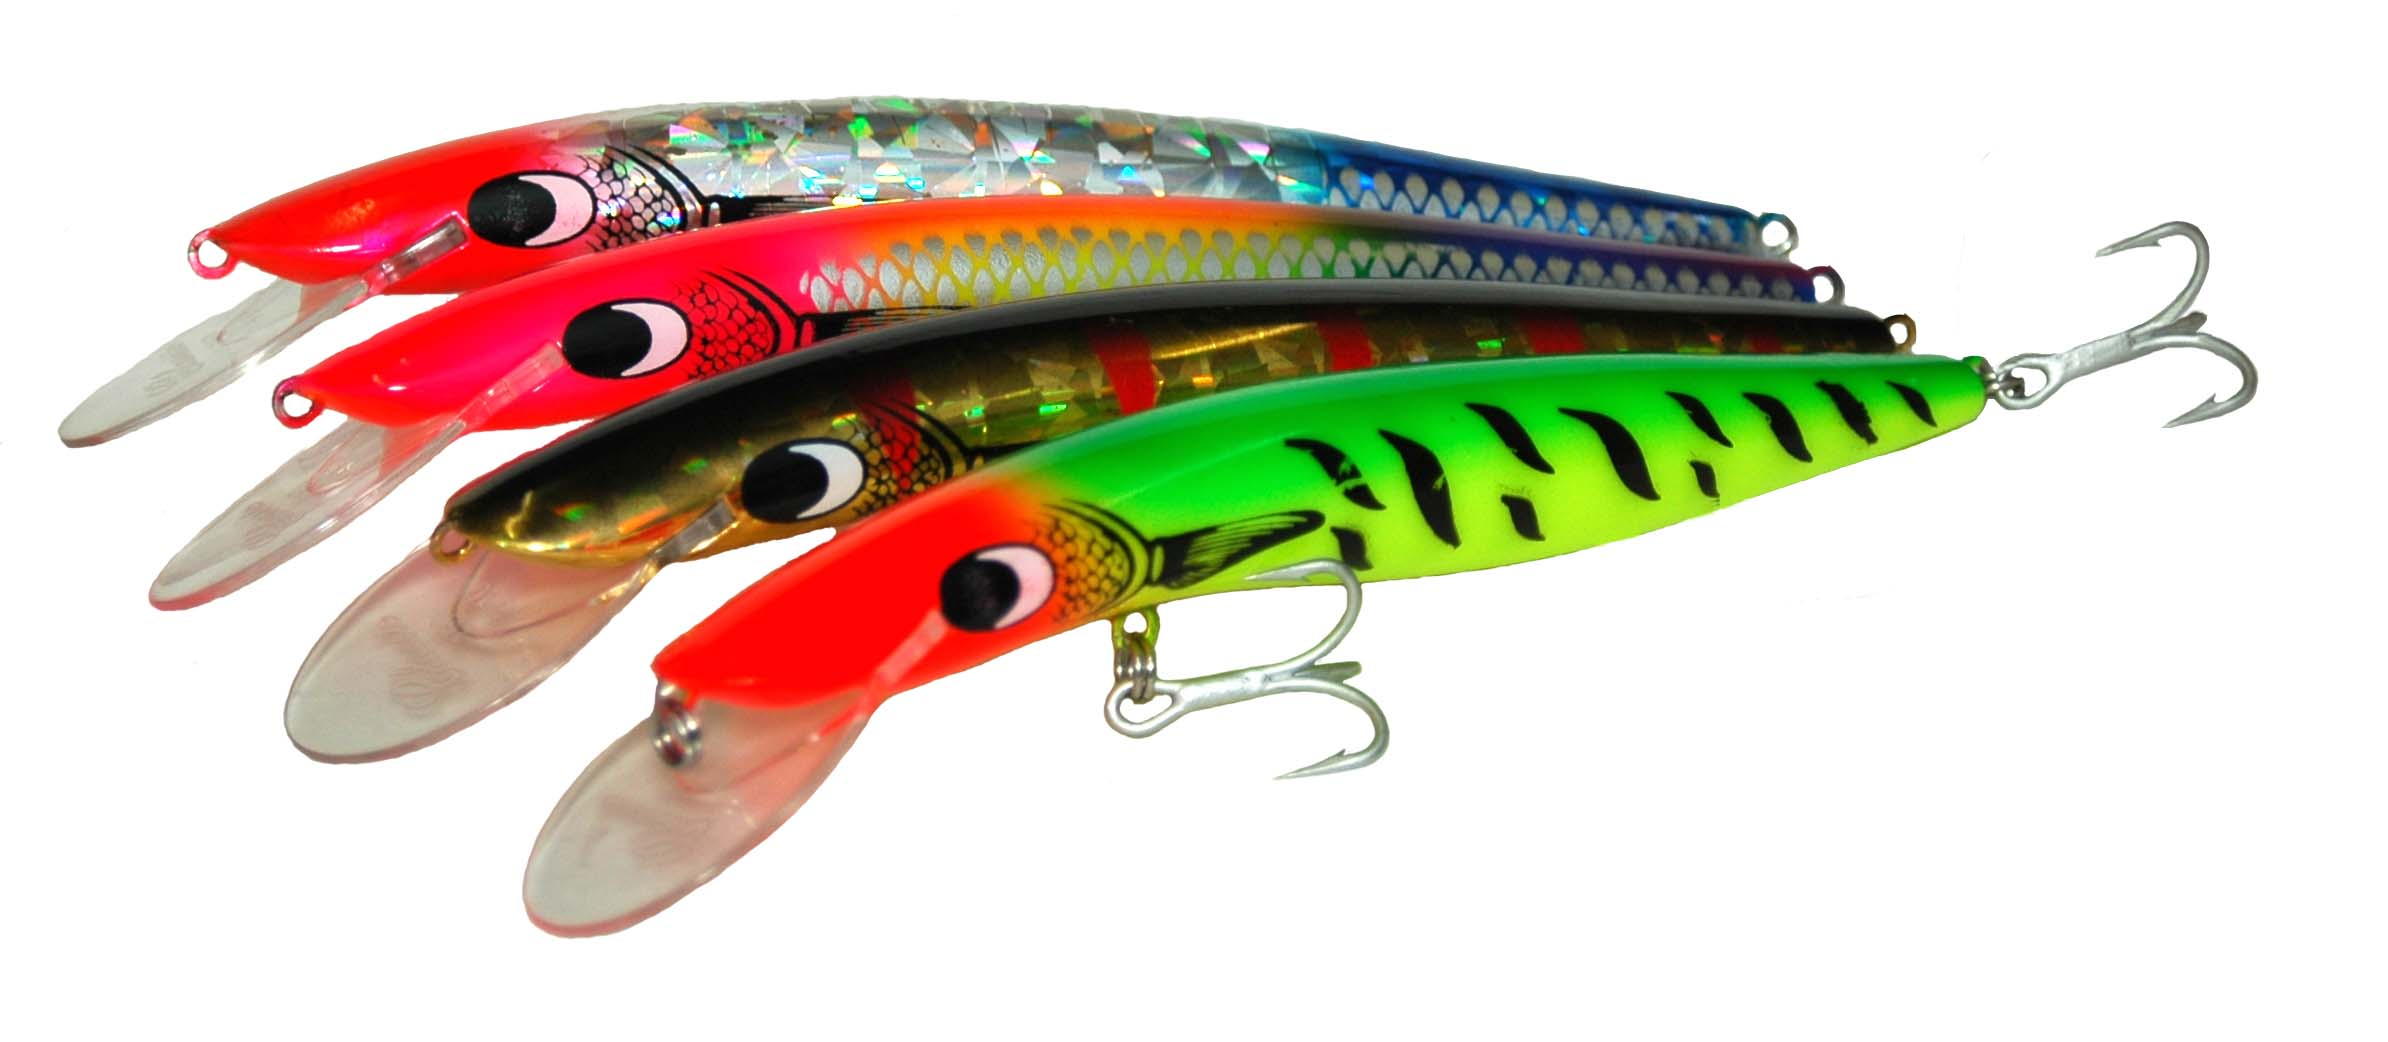 Jm gillies about classic lures for Pictures of fishing lures